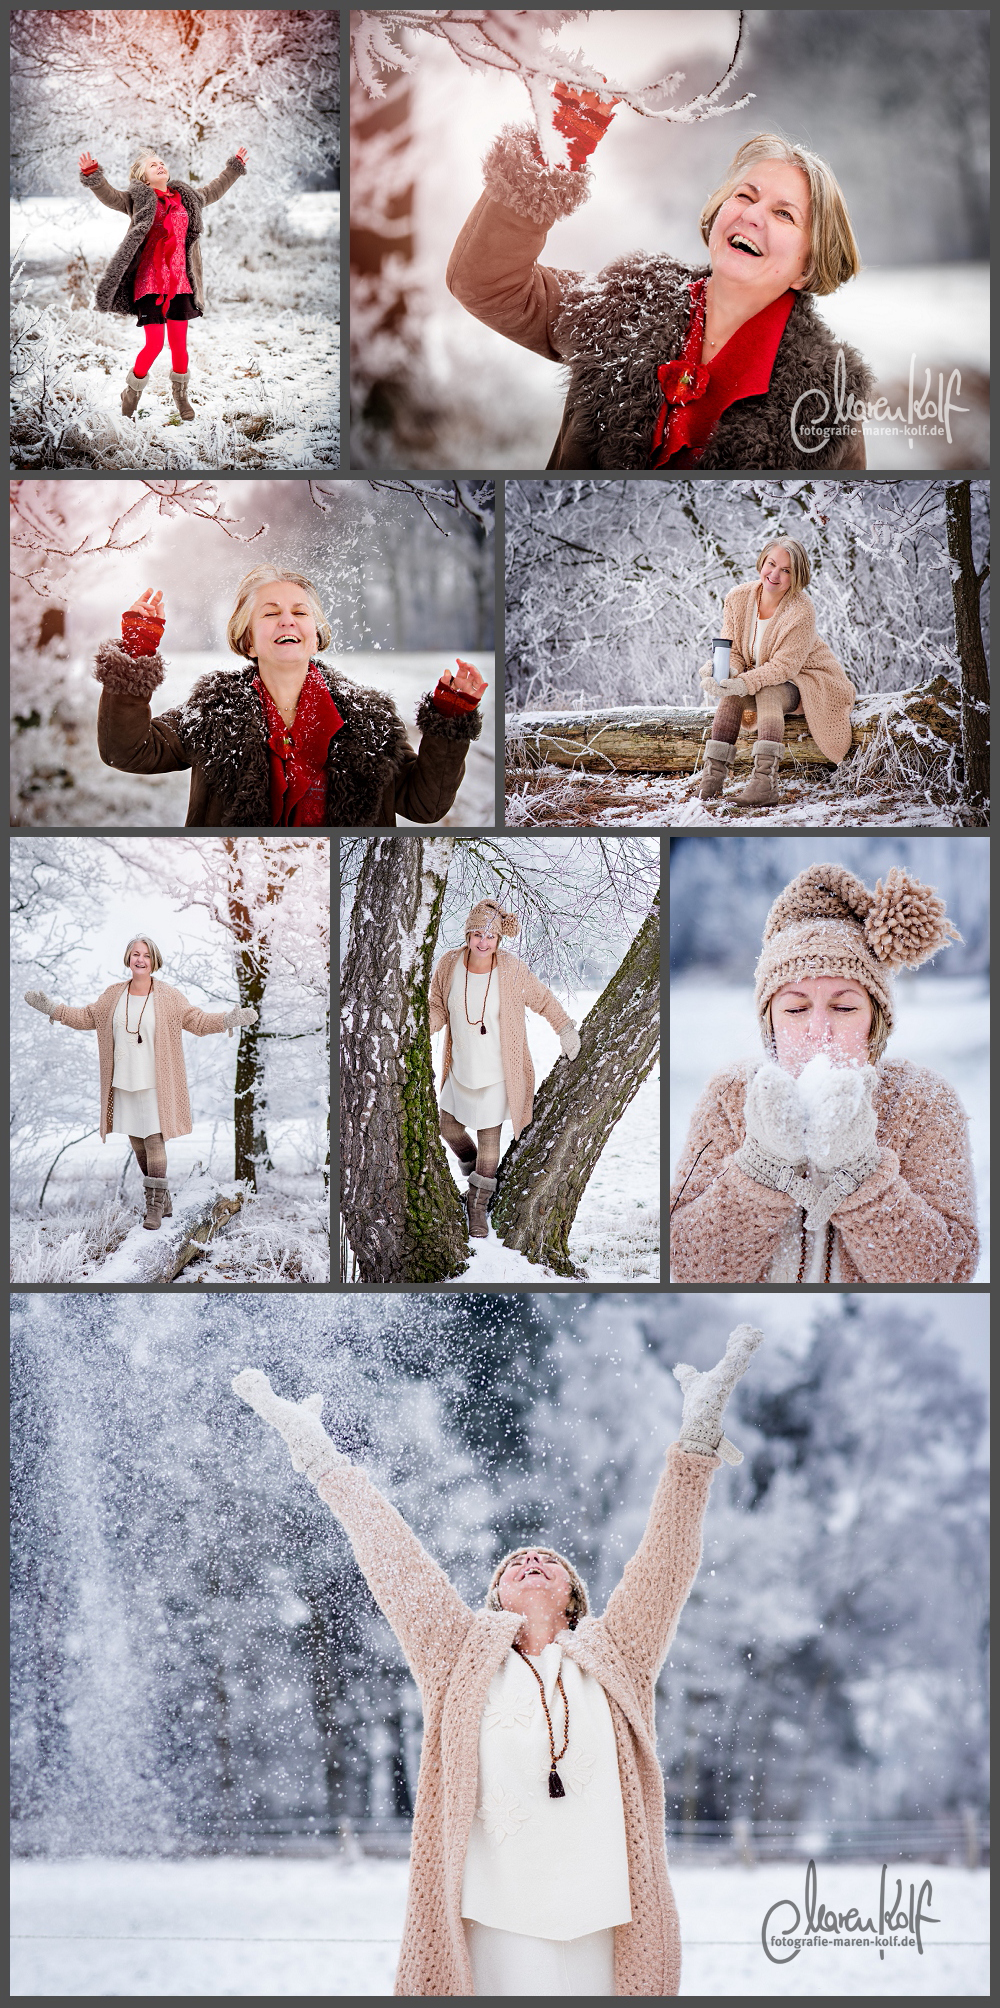 winter-portrait-shooting-maren-kolf-fotografie-wedemark-blog